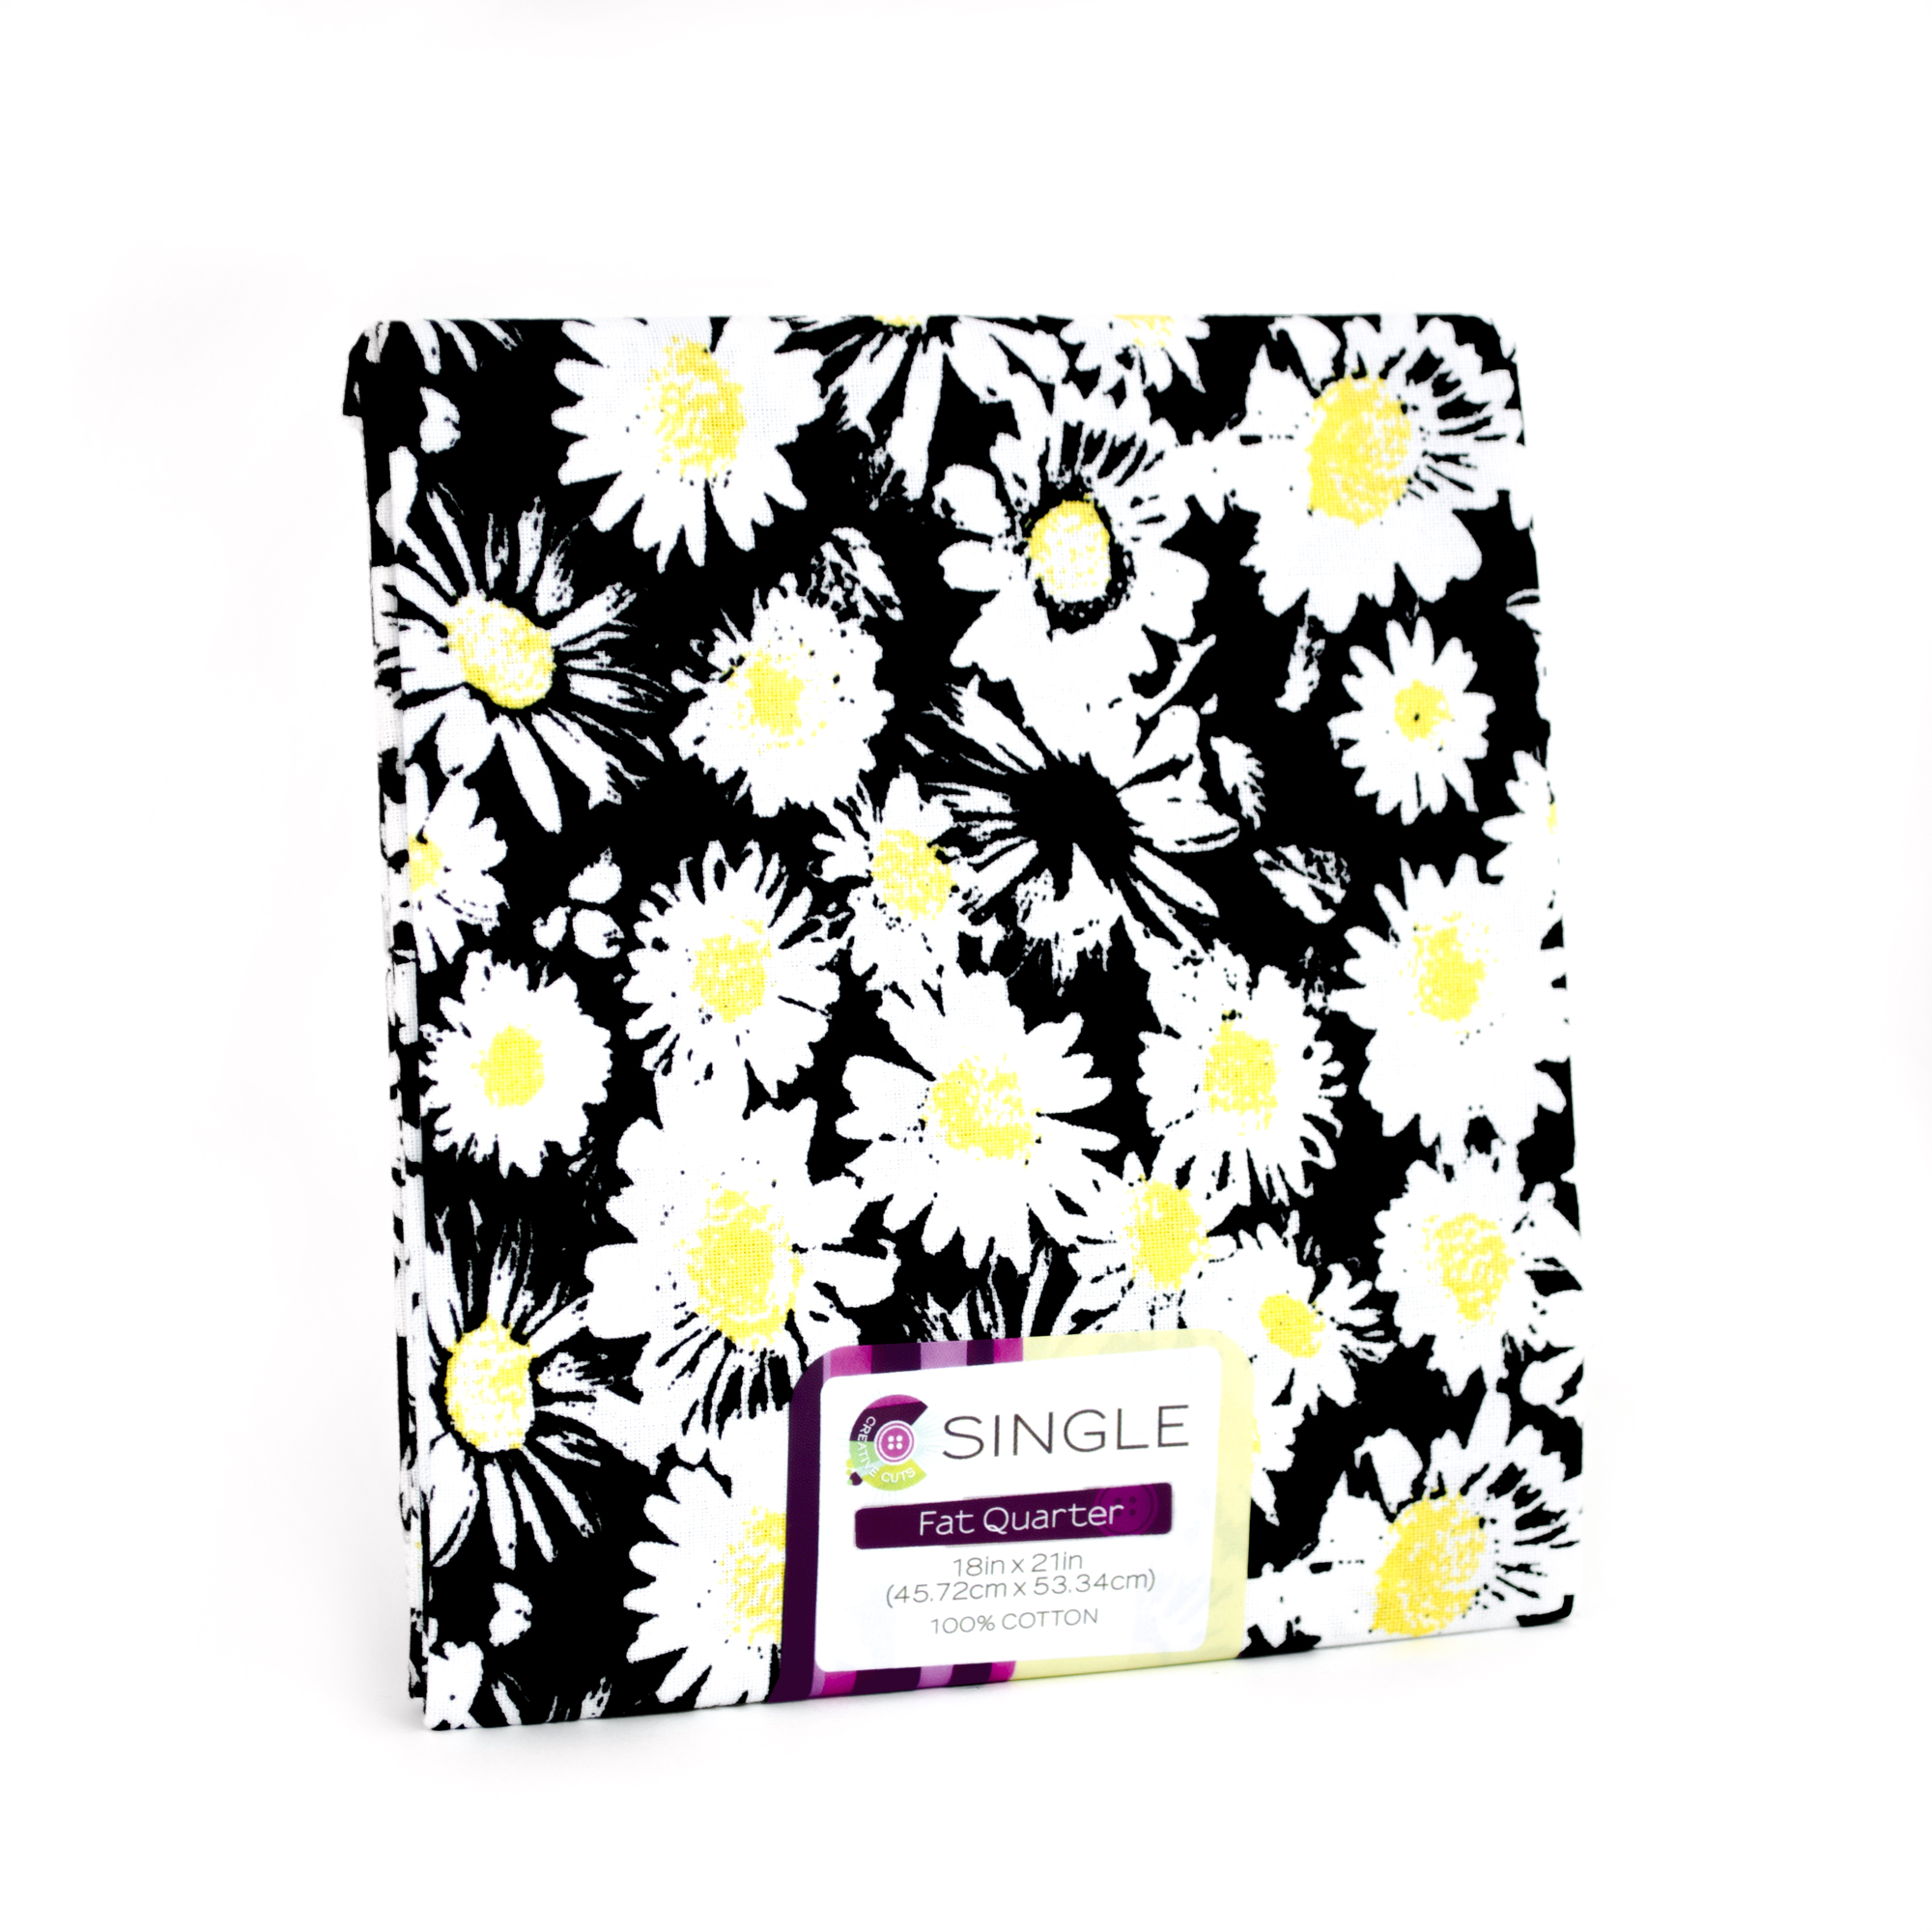 "Fabric Editions- Cotton Fabric, Fat Quarter, 18"" x 21"" DITZY DAISY ONYX"